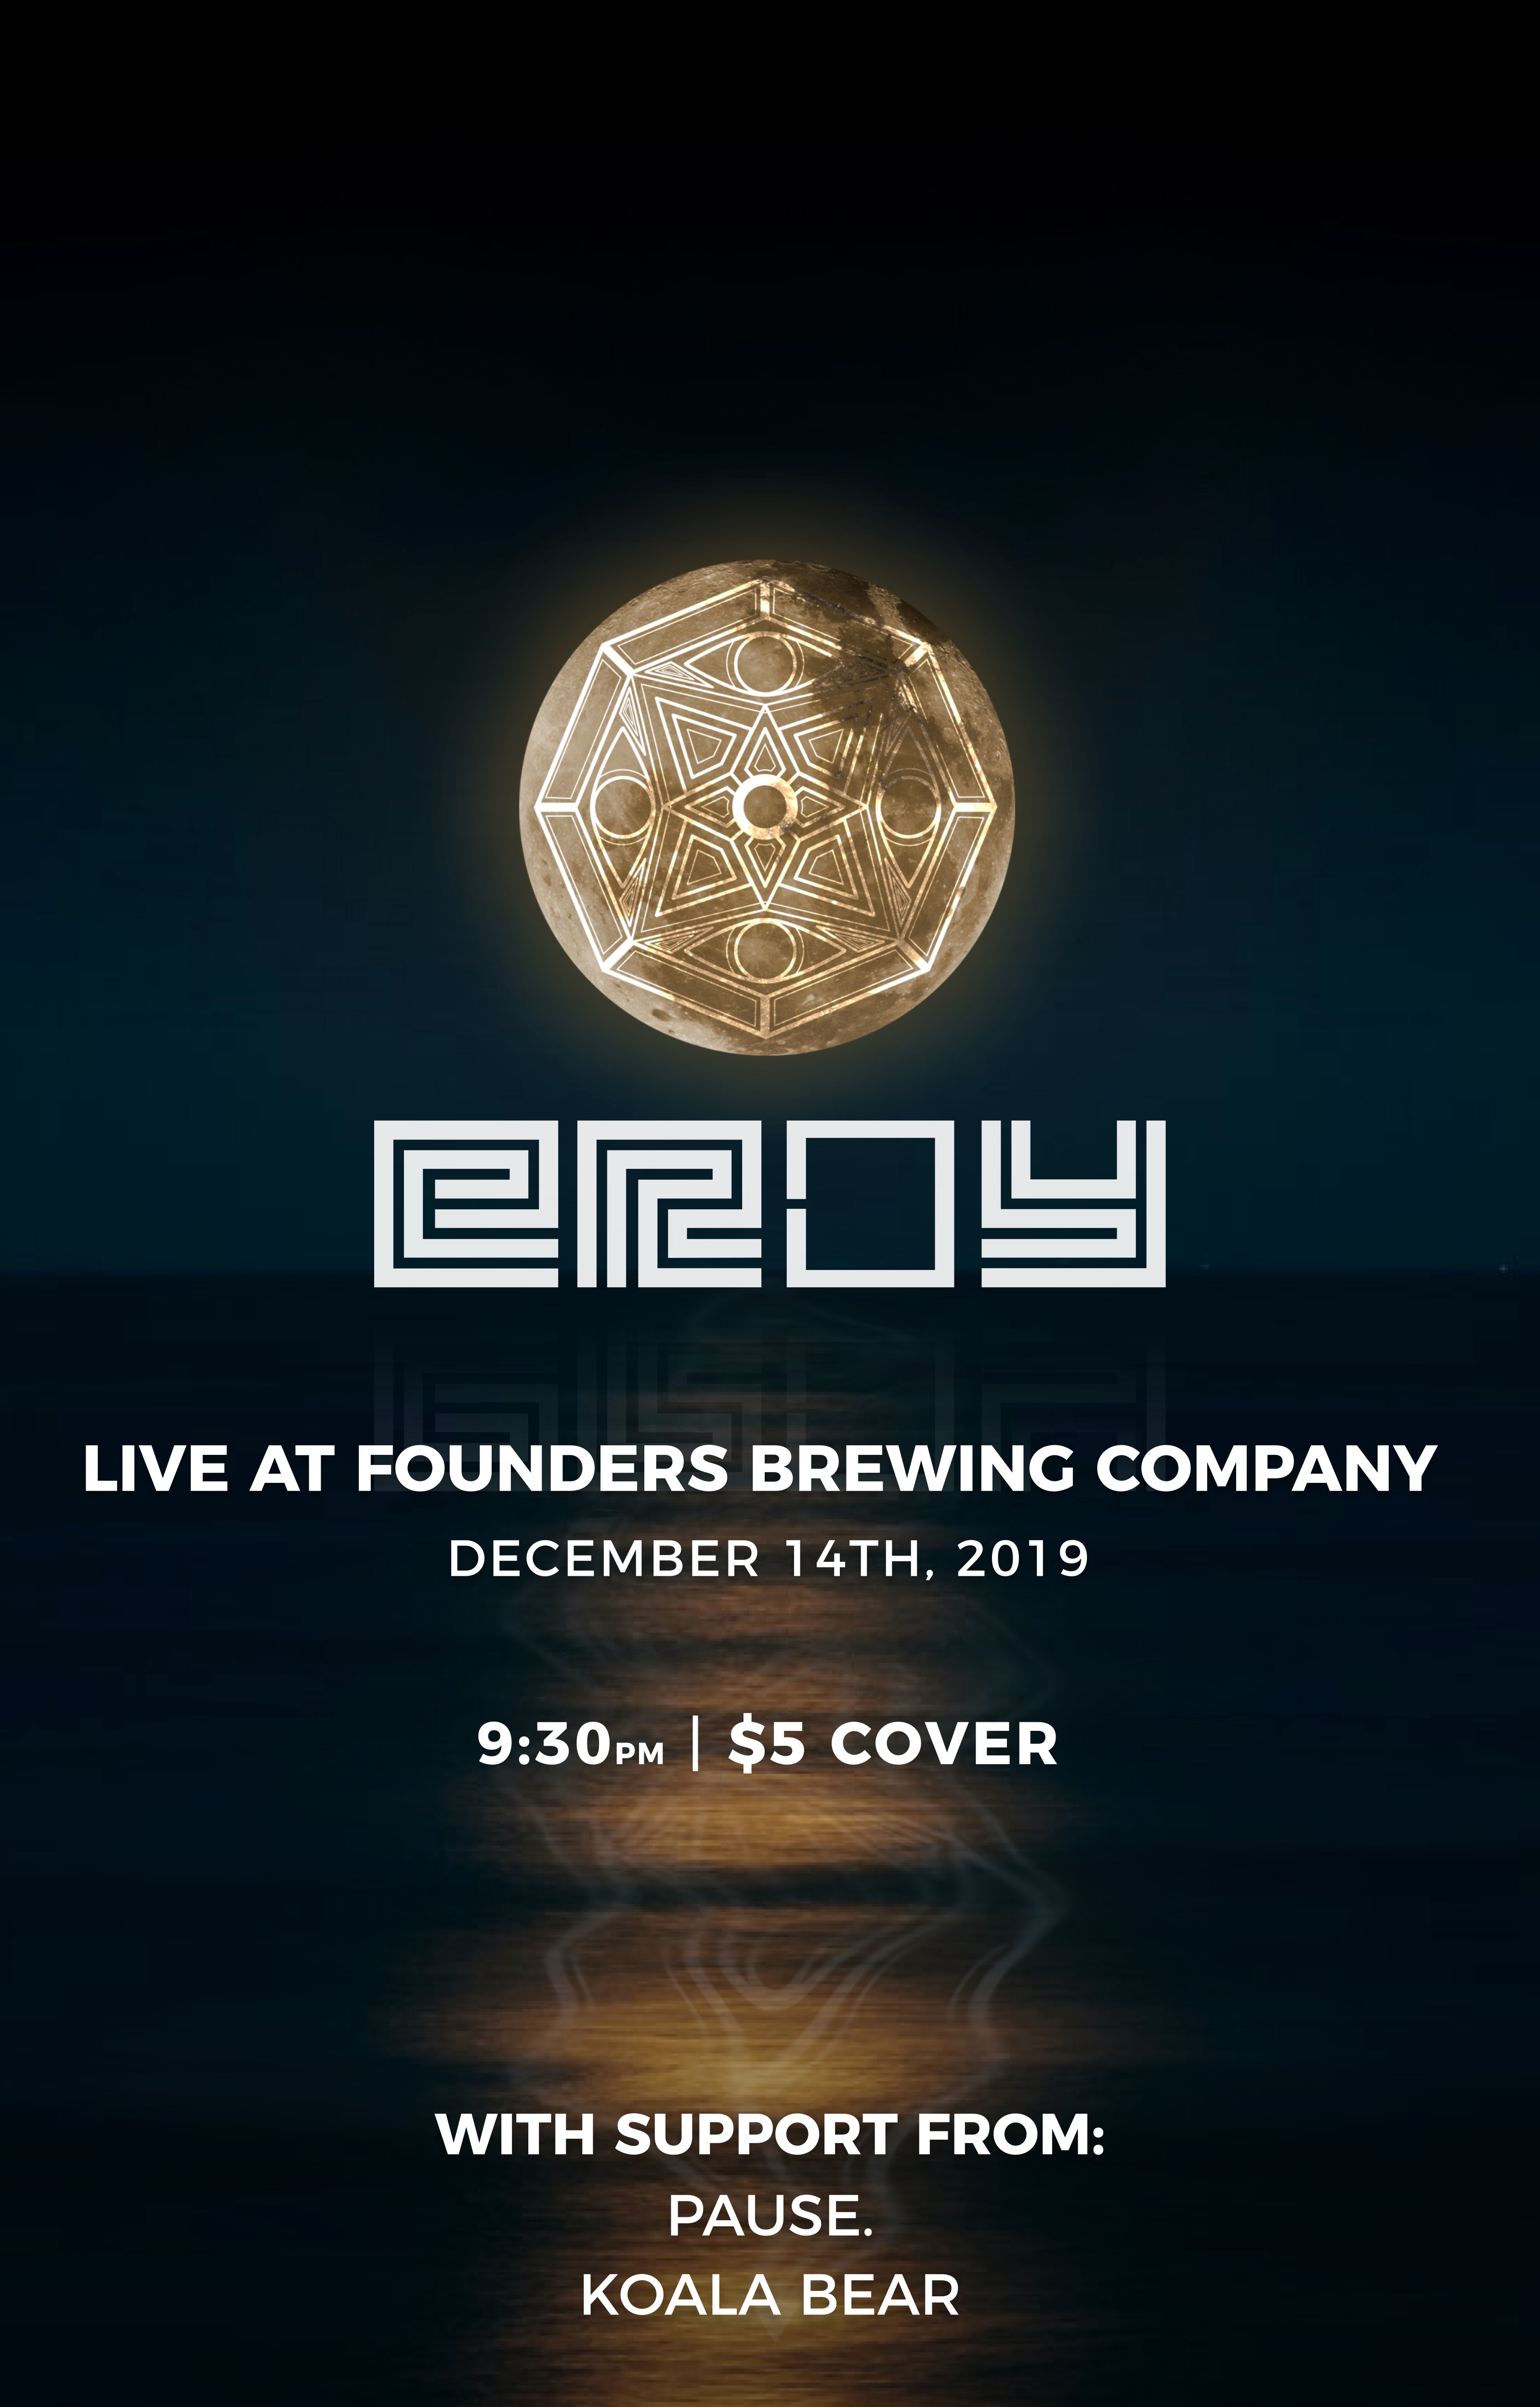 eRoy event poster hosted by Founders Brewing Co.